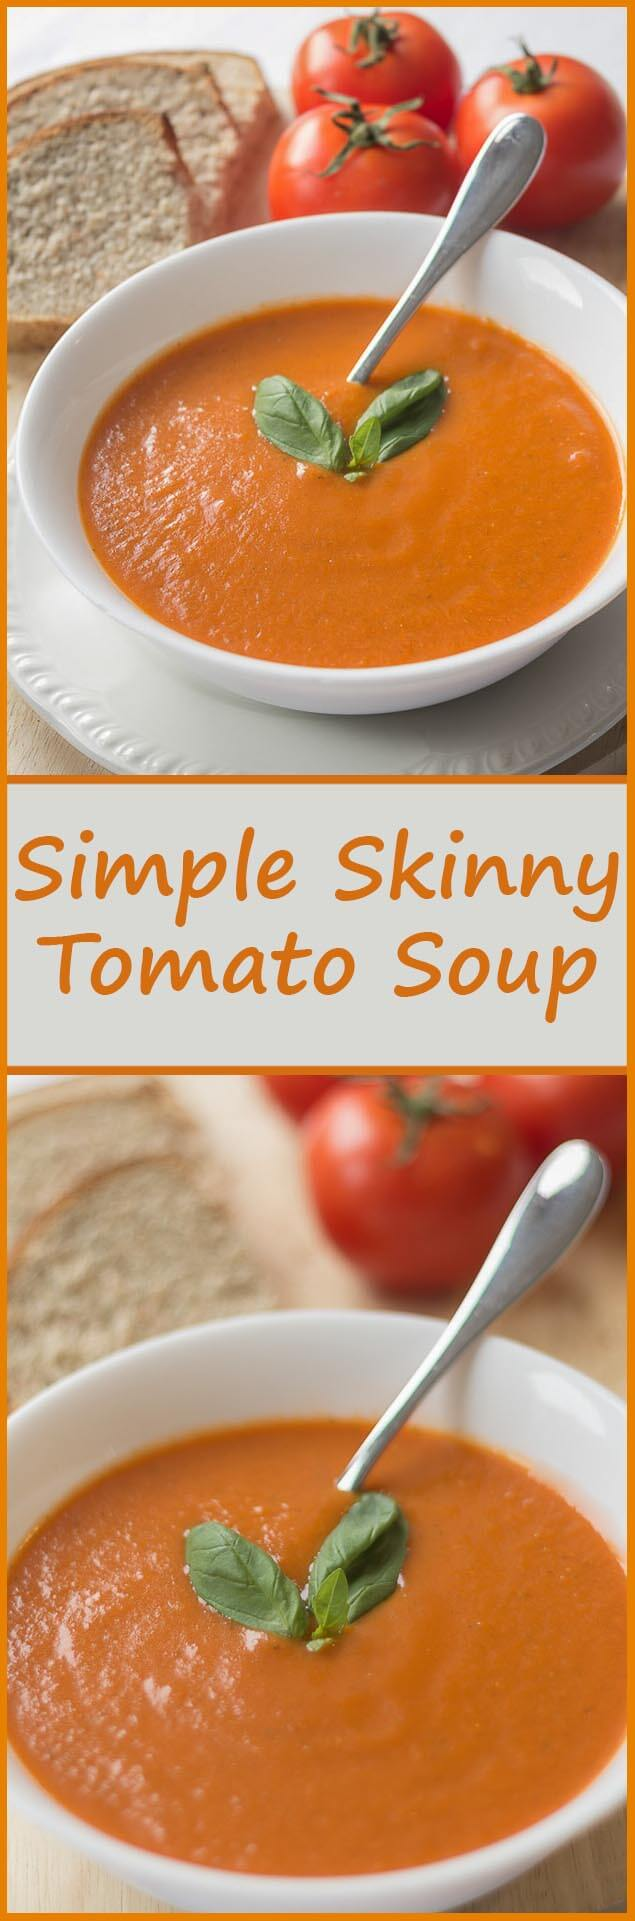 Low in calories, carbs, fat and cost. An all year round easy family tomato soup recipe, simply packed full of flavour. You'll never want to buy a tinned tomato soup again!